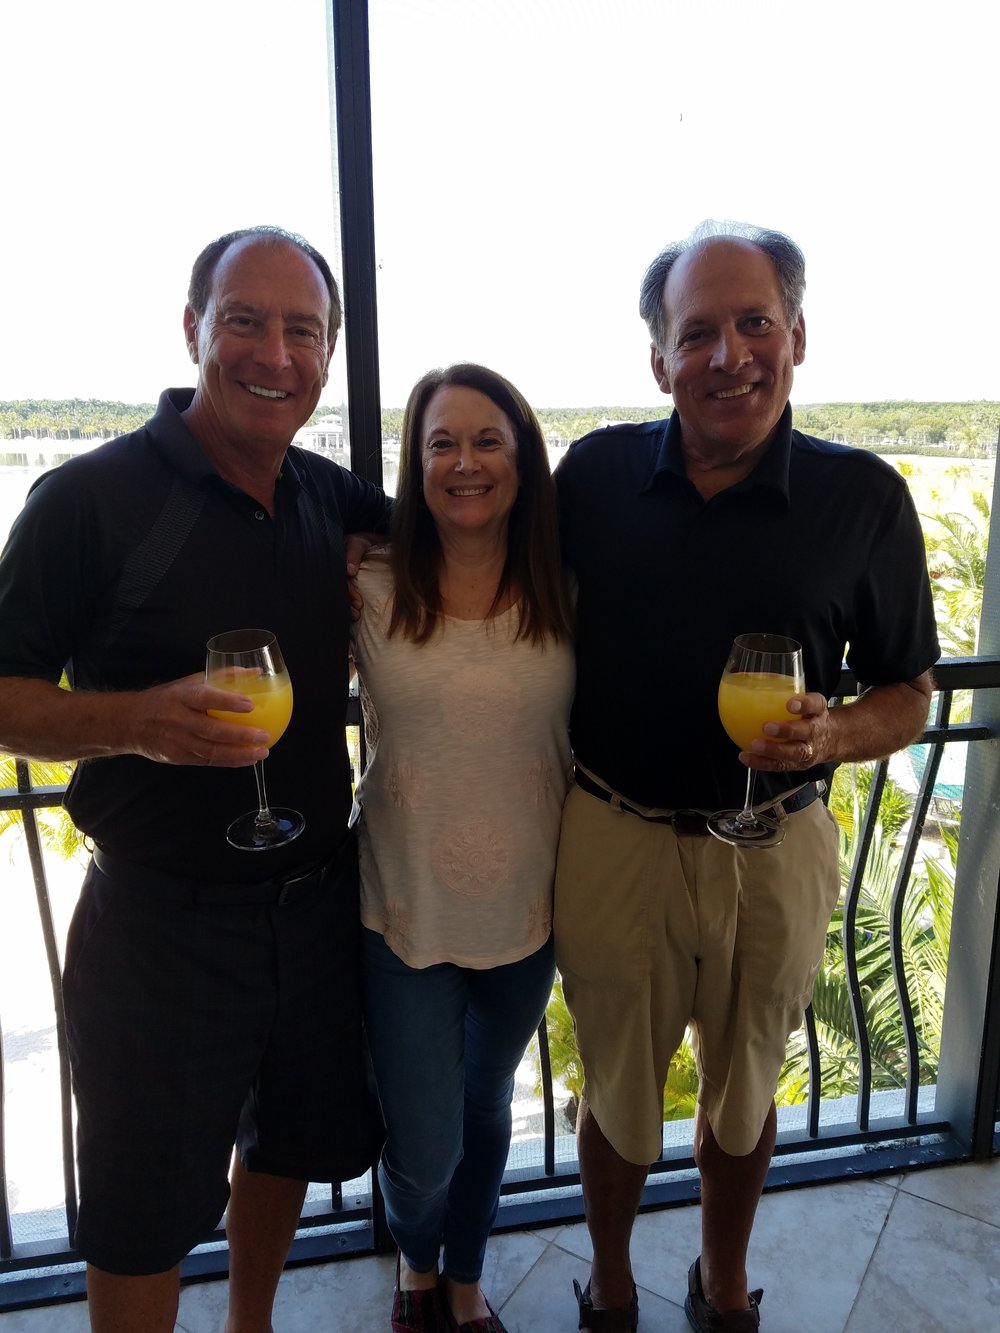 Alan Biren, Margie Sternin Bloomberg, and Steve Bilsky on a beautiful day for brunch in Florida,  February 2017